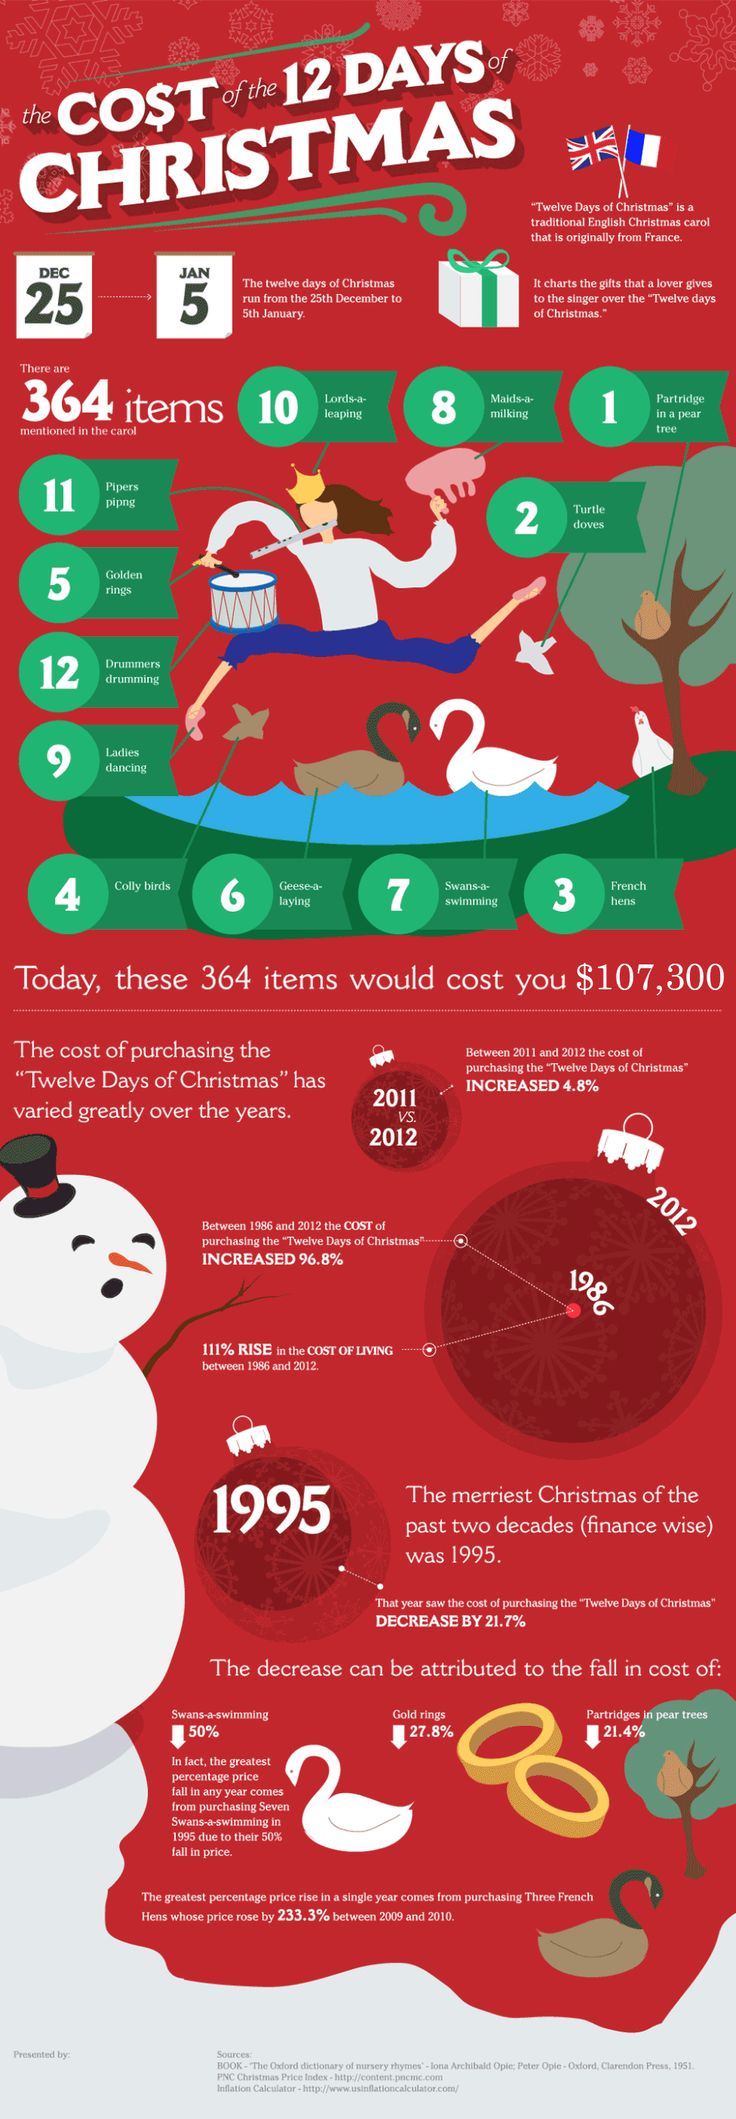 The Cost of The 12 Days of Christmas